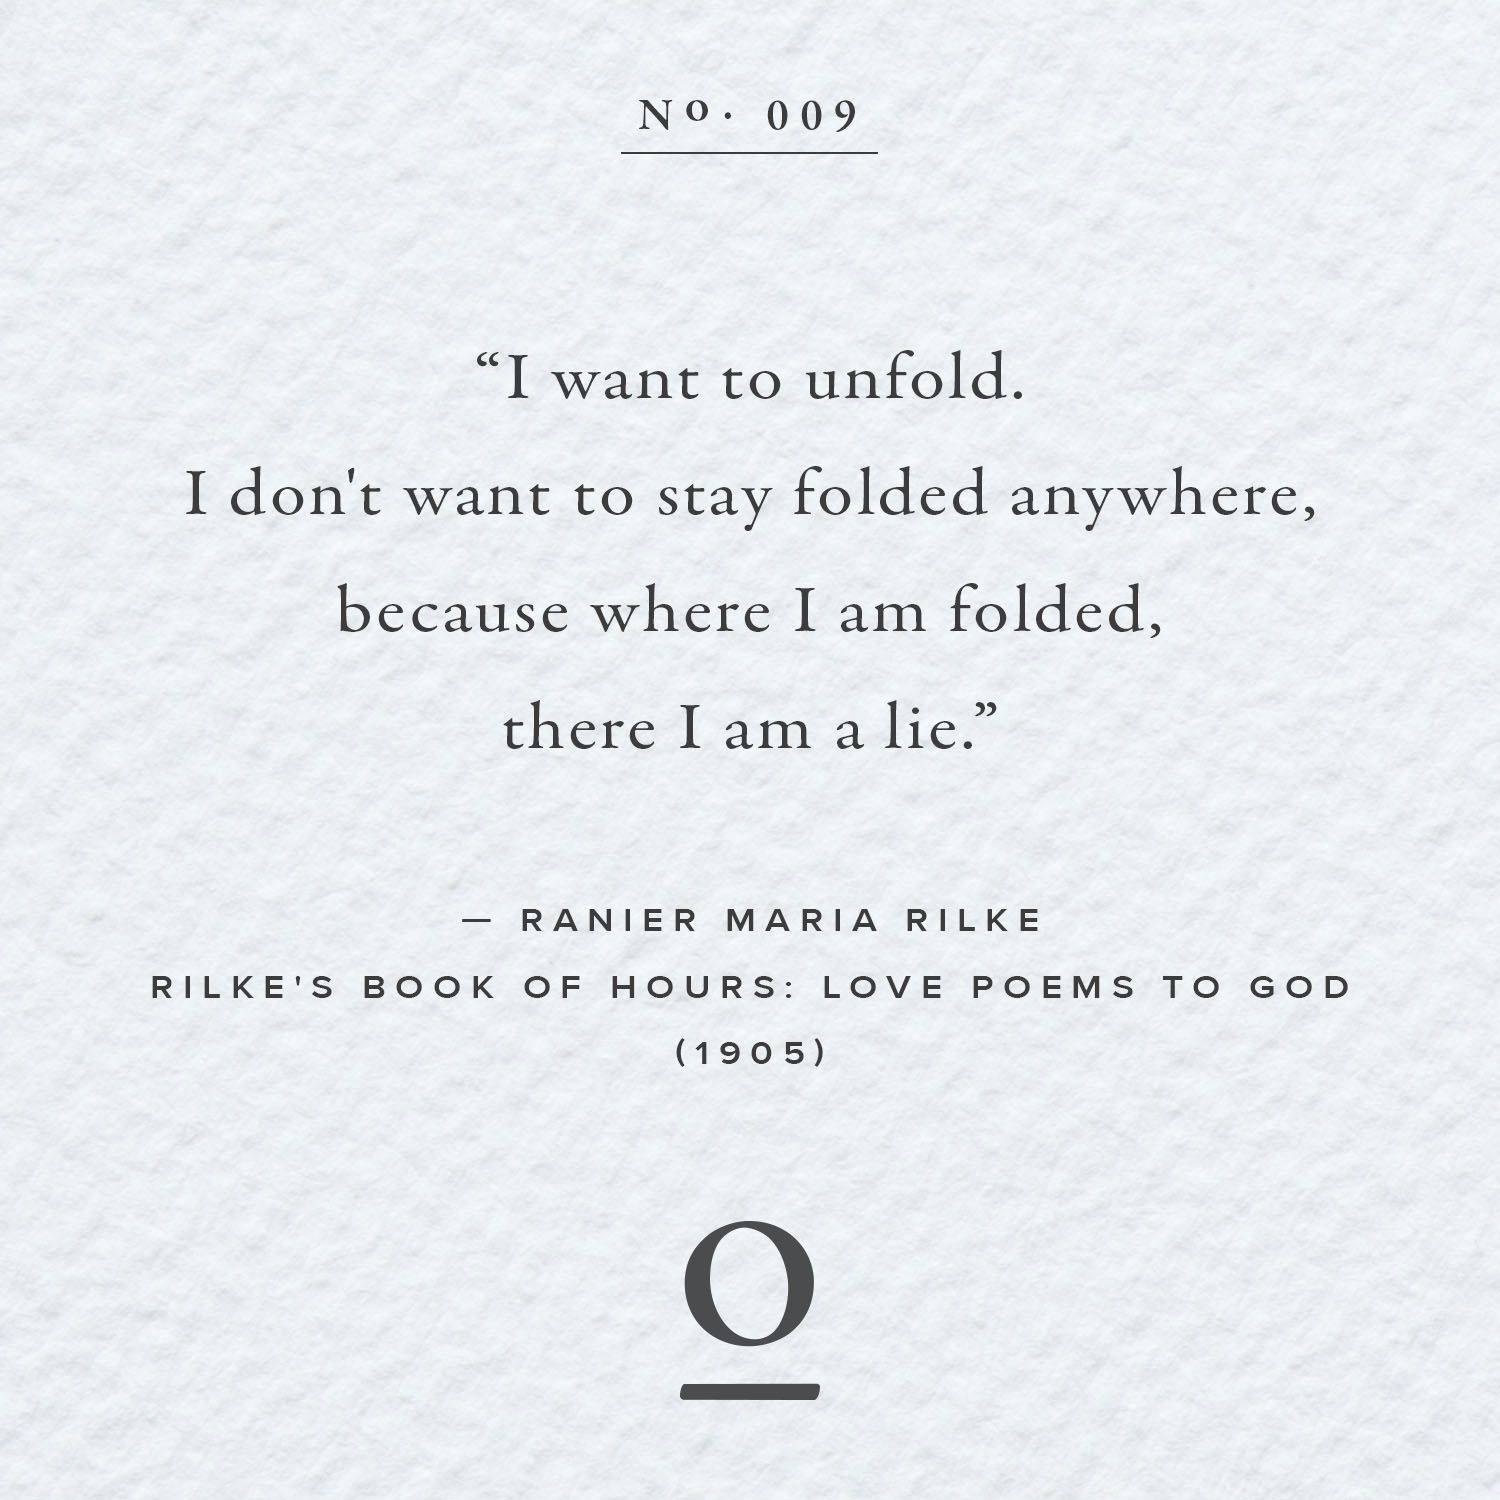 "I don t want to stay folded anywhere because where I am folded there I am a lie "" Ranier Maria Rilke Rilke s Book of Hours Love Poems to God"